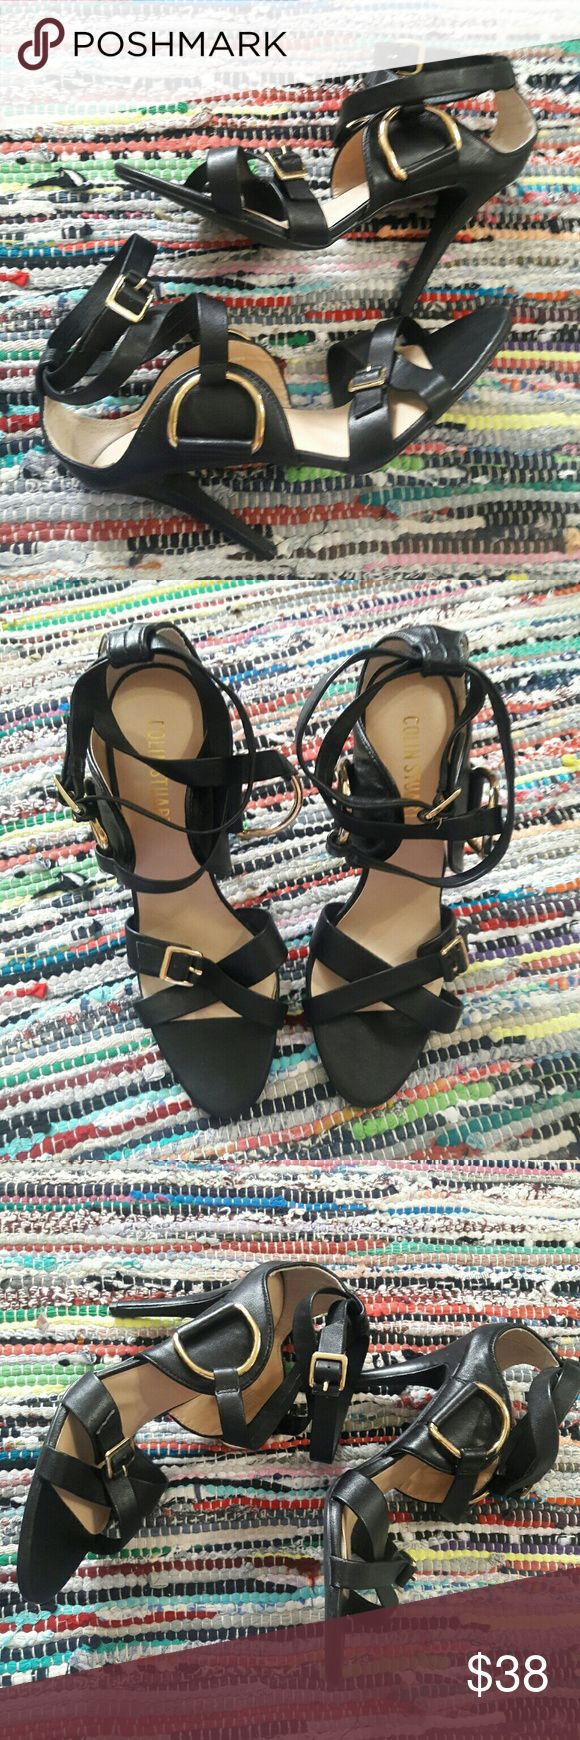 Colin Stuart Strappy black leather heels GUC ankle straps soft leather very comfortable black with gold hardware 8.5 Colin Stuart Shoes